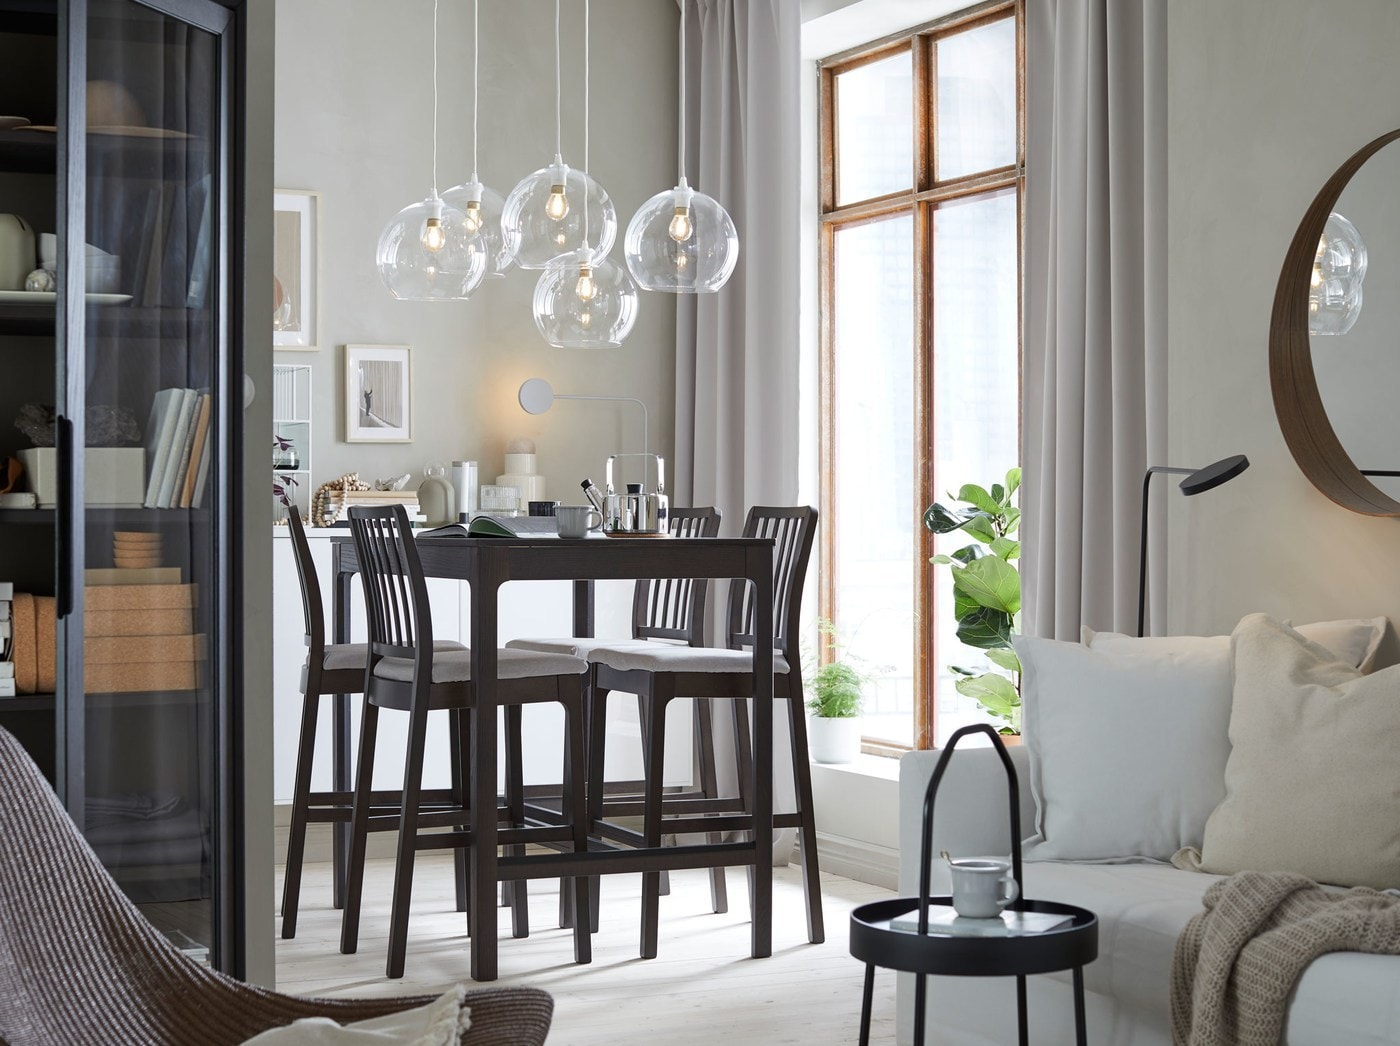 A dining space with EKEDALEN dark grey four-seater bar table and high bar stools and JAKOBSBYN clear glass pendant lampshades.